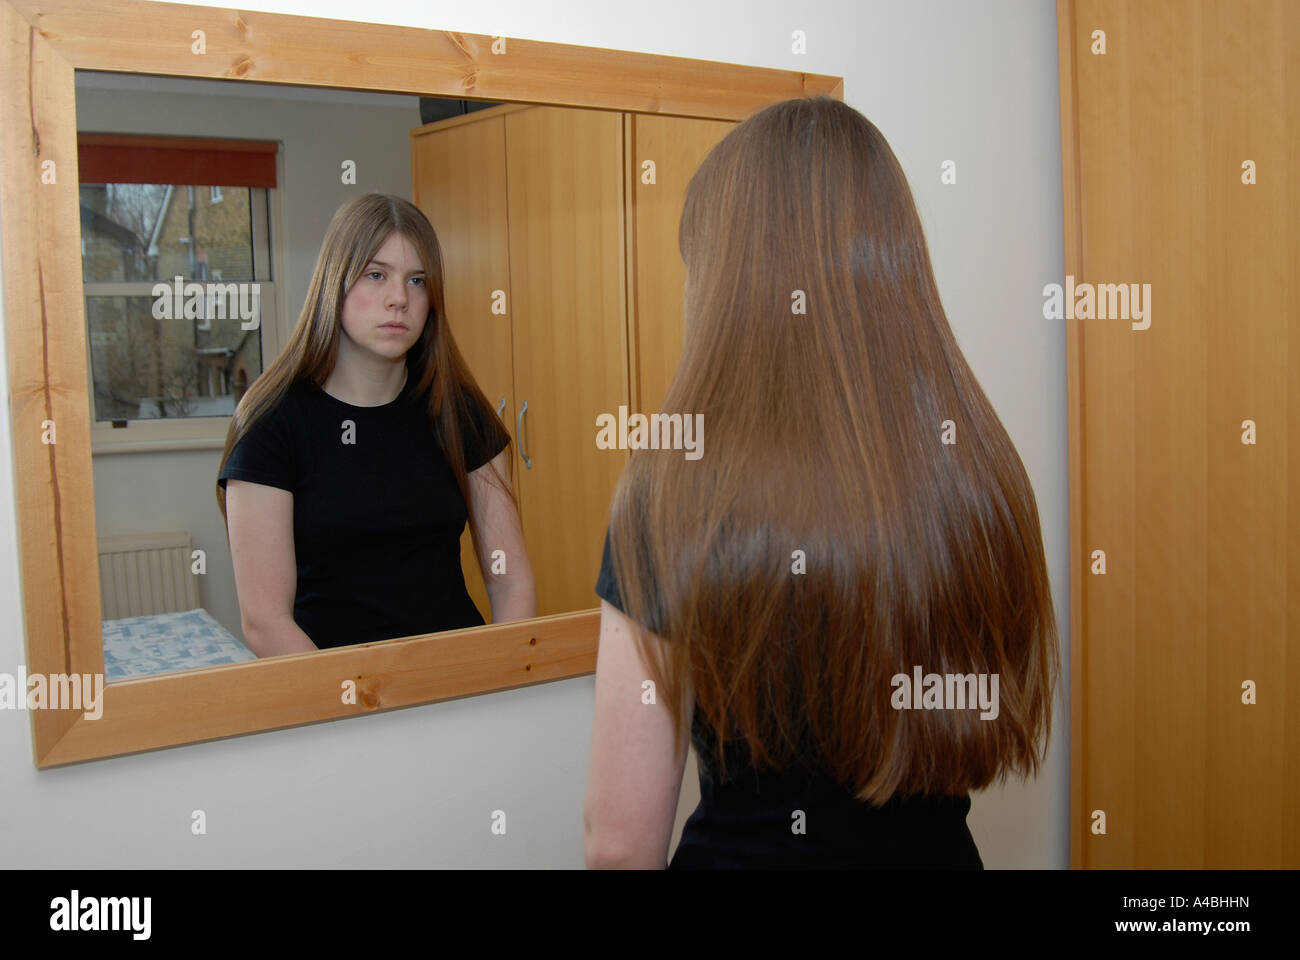 reflection on the girl with the Teen texting: difference in girls, boys text talk, reflection on gender identity date: october 2, 2014  parental interaction and girl/boy communications.